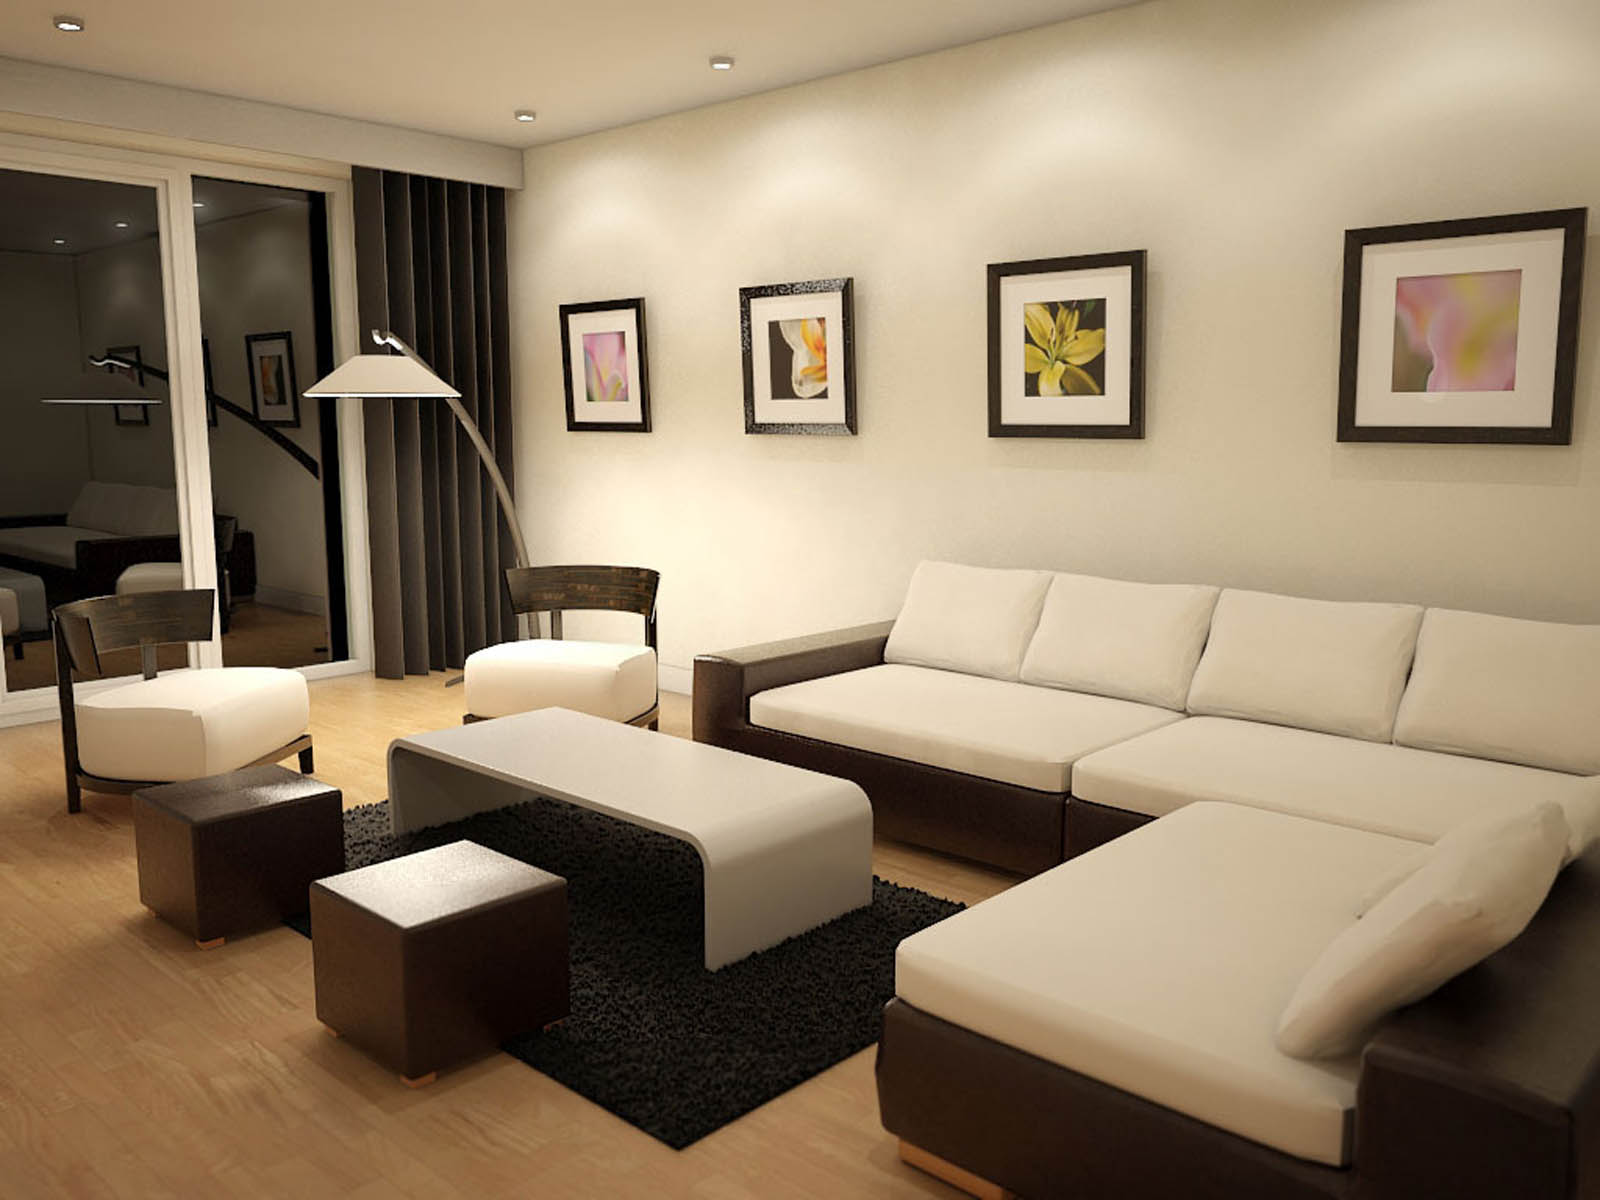 Winsome Sofa plus Coffee Table and Floor Lamp To Decorate Living Room